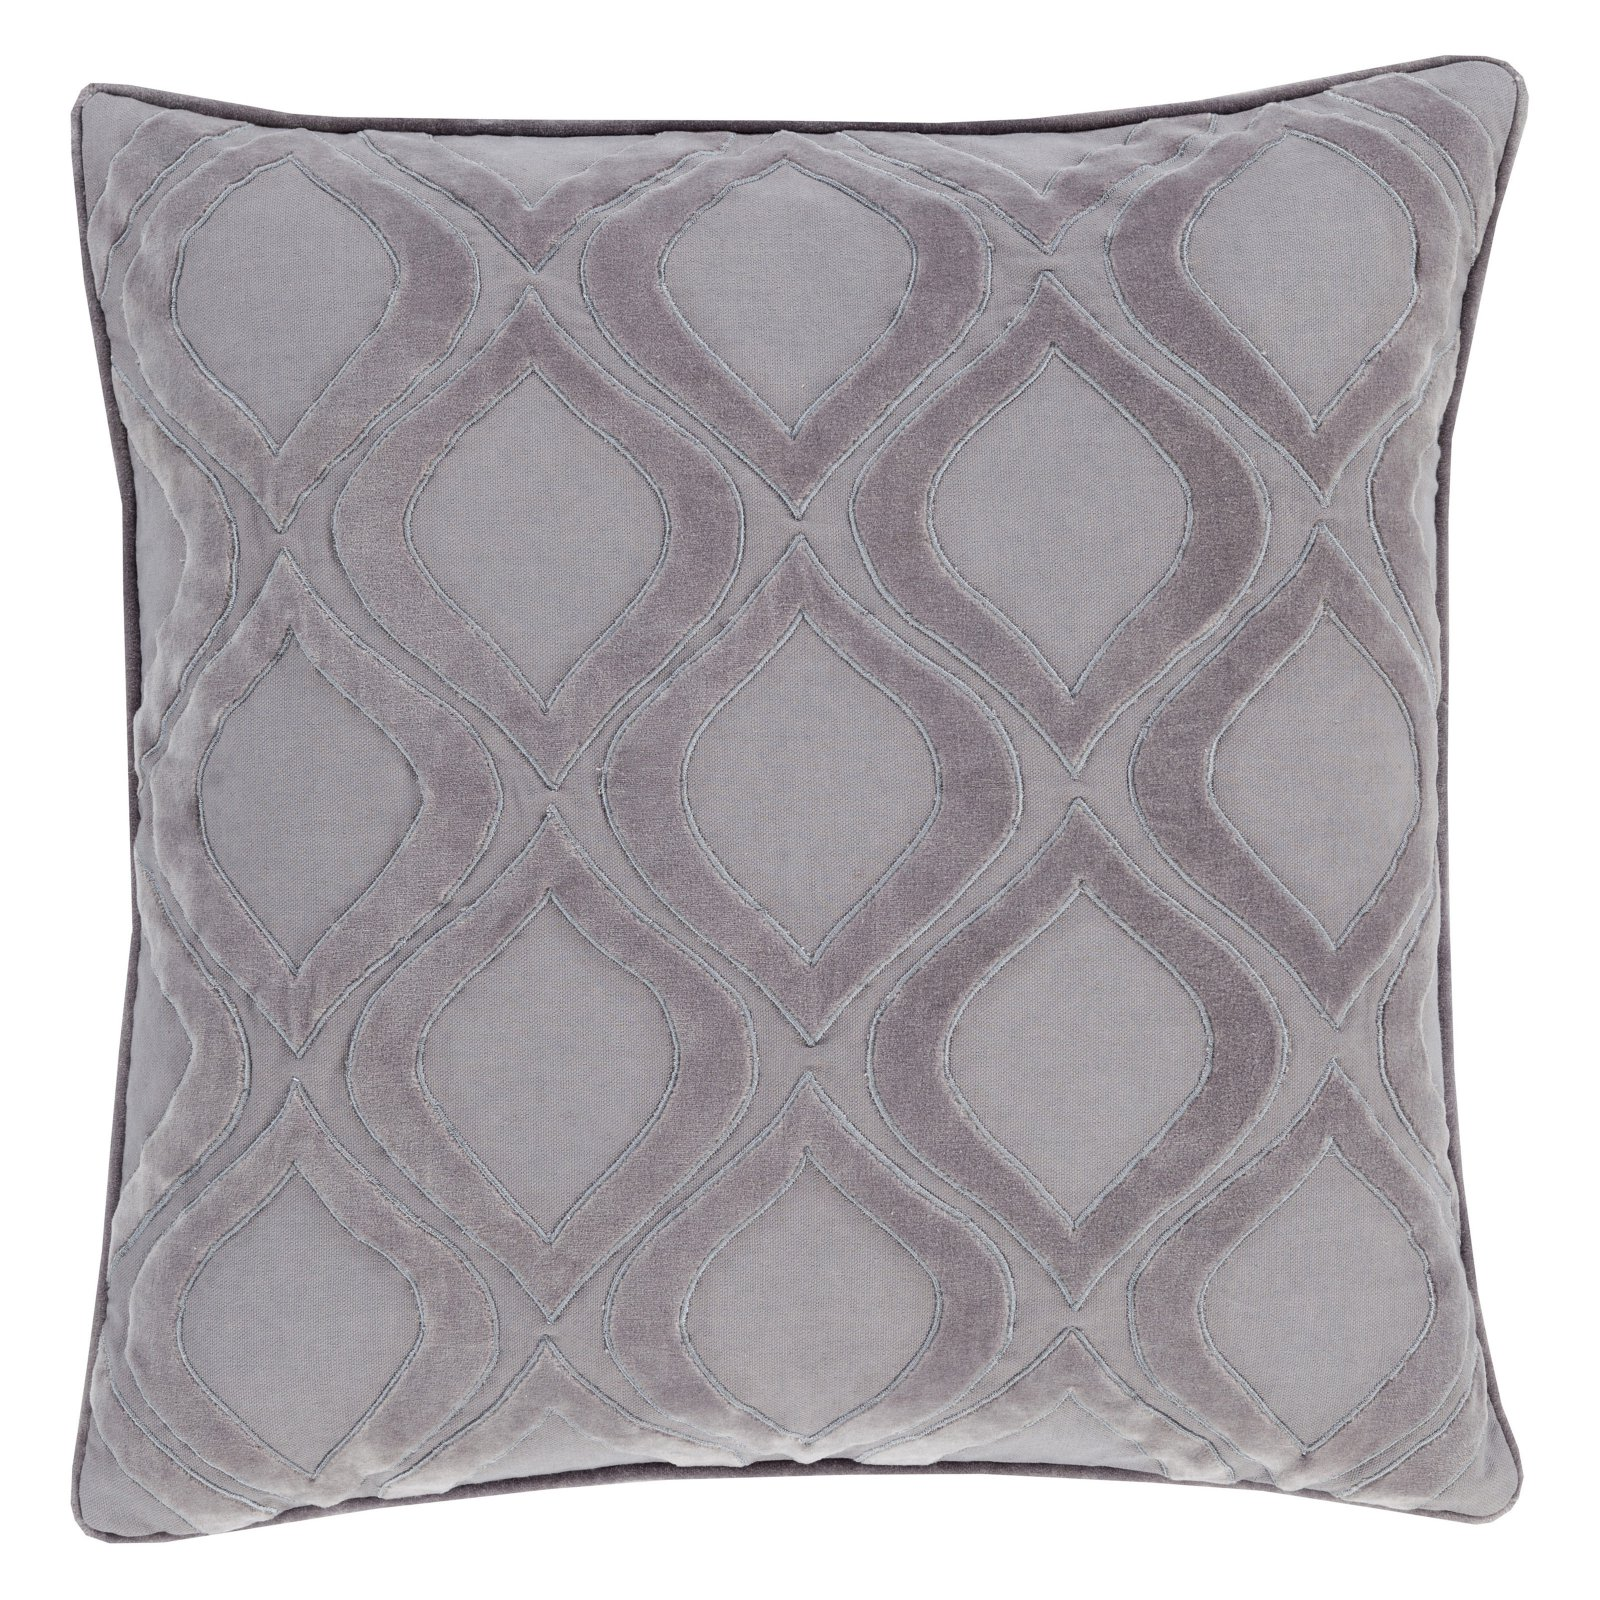 Surya Seraphina Decorative Throw Pillow